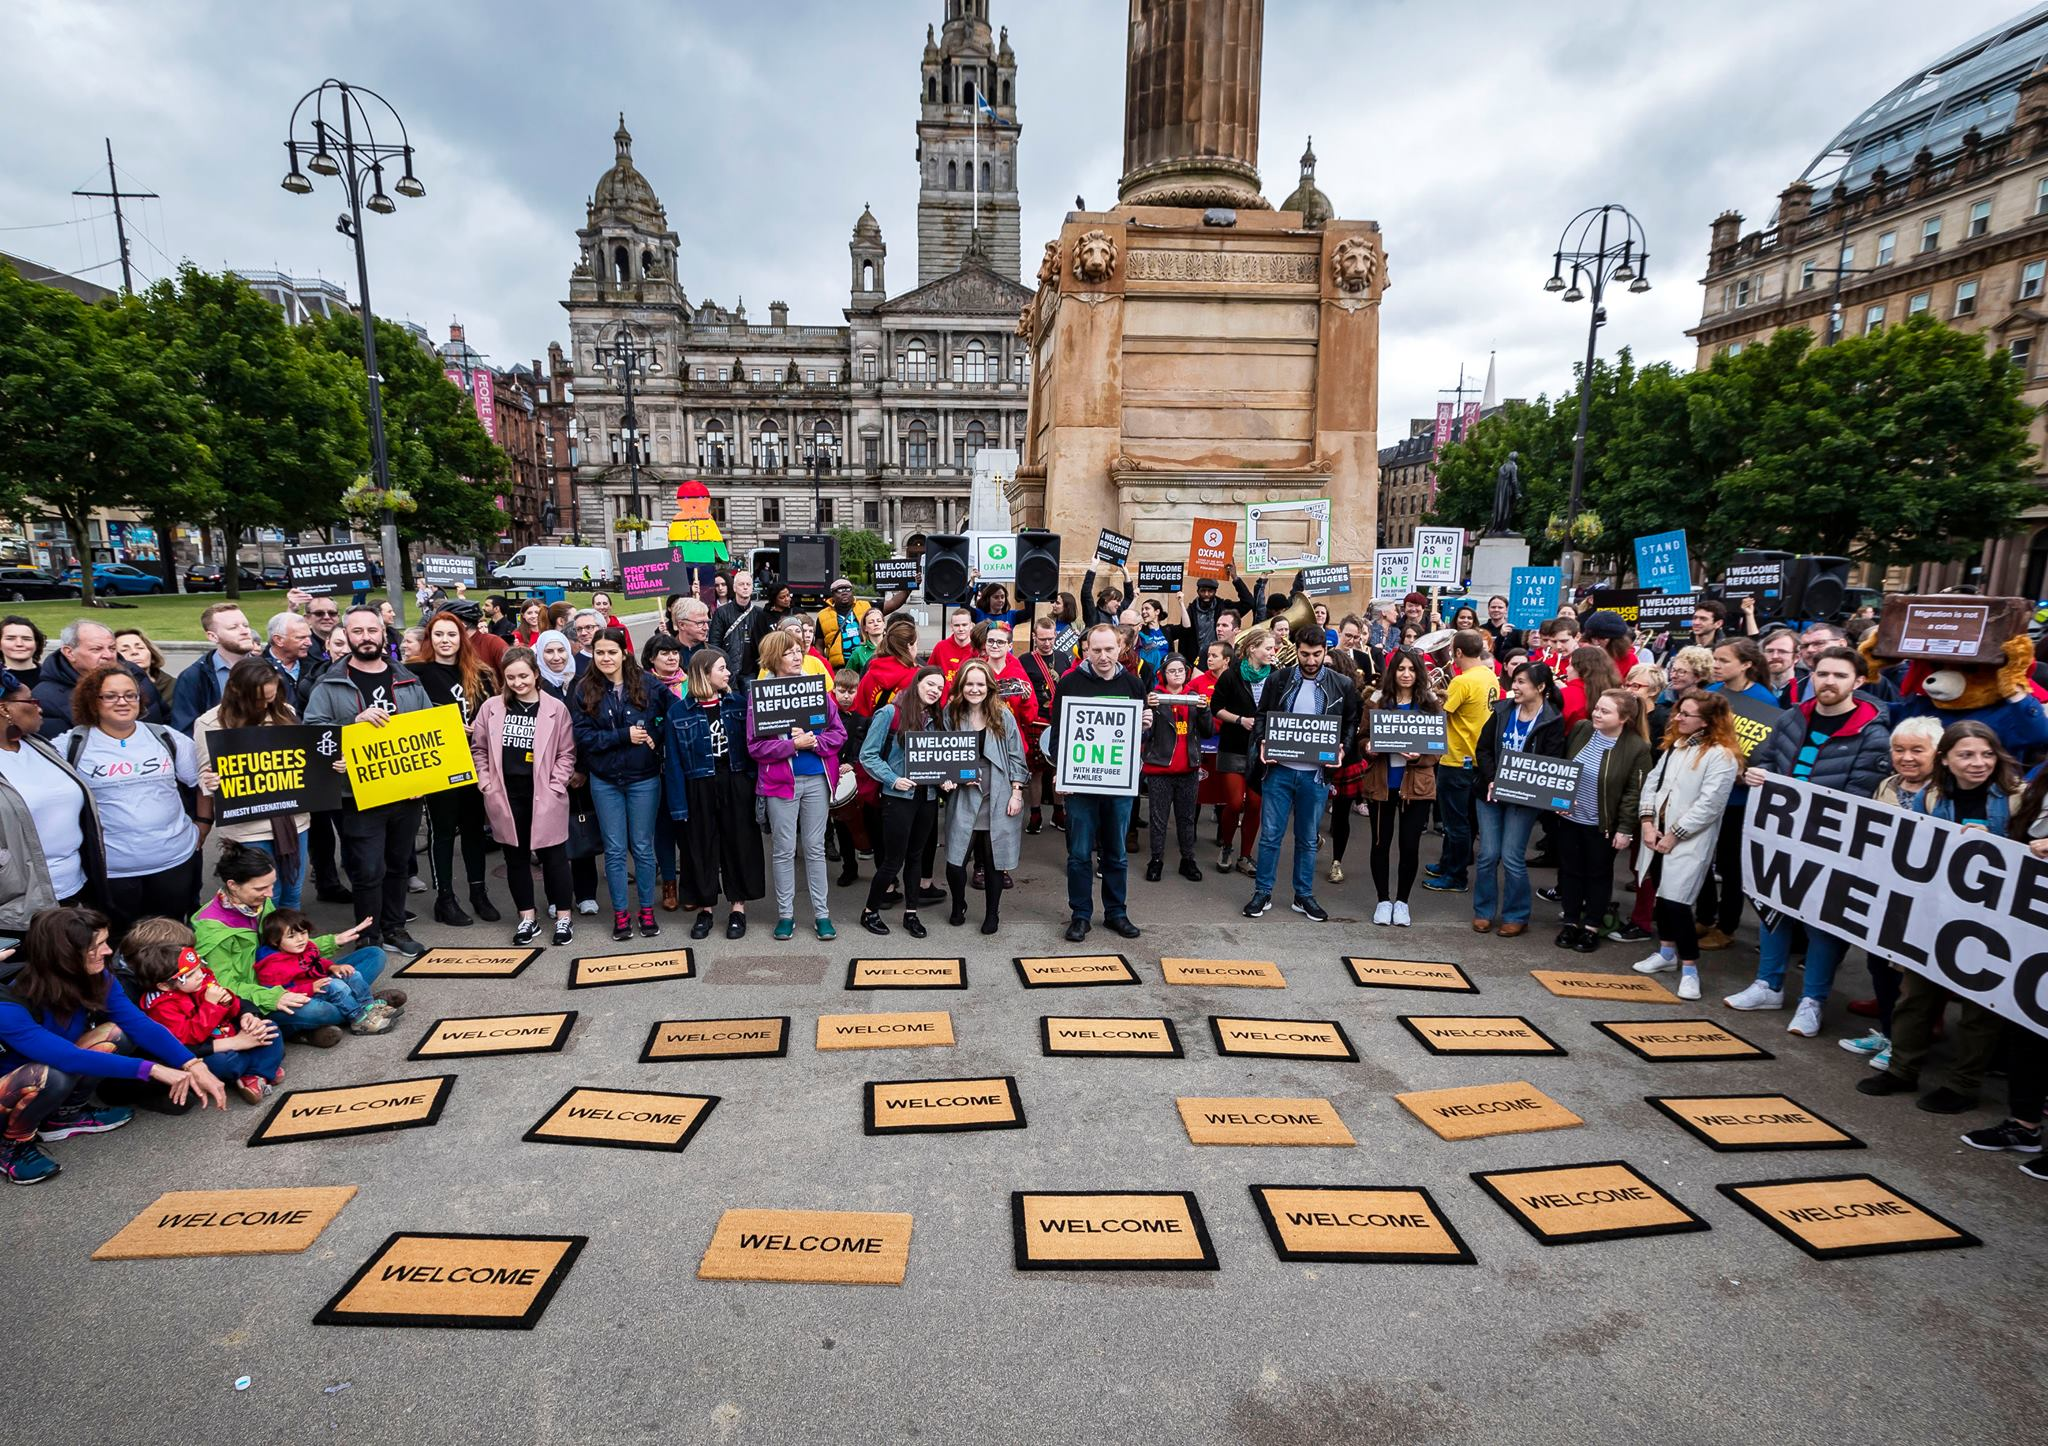 33 Days to get your submissions in for Refugee Festival Scotland 2019!